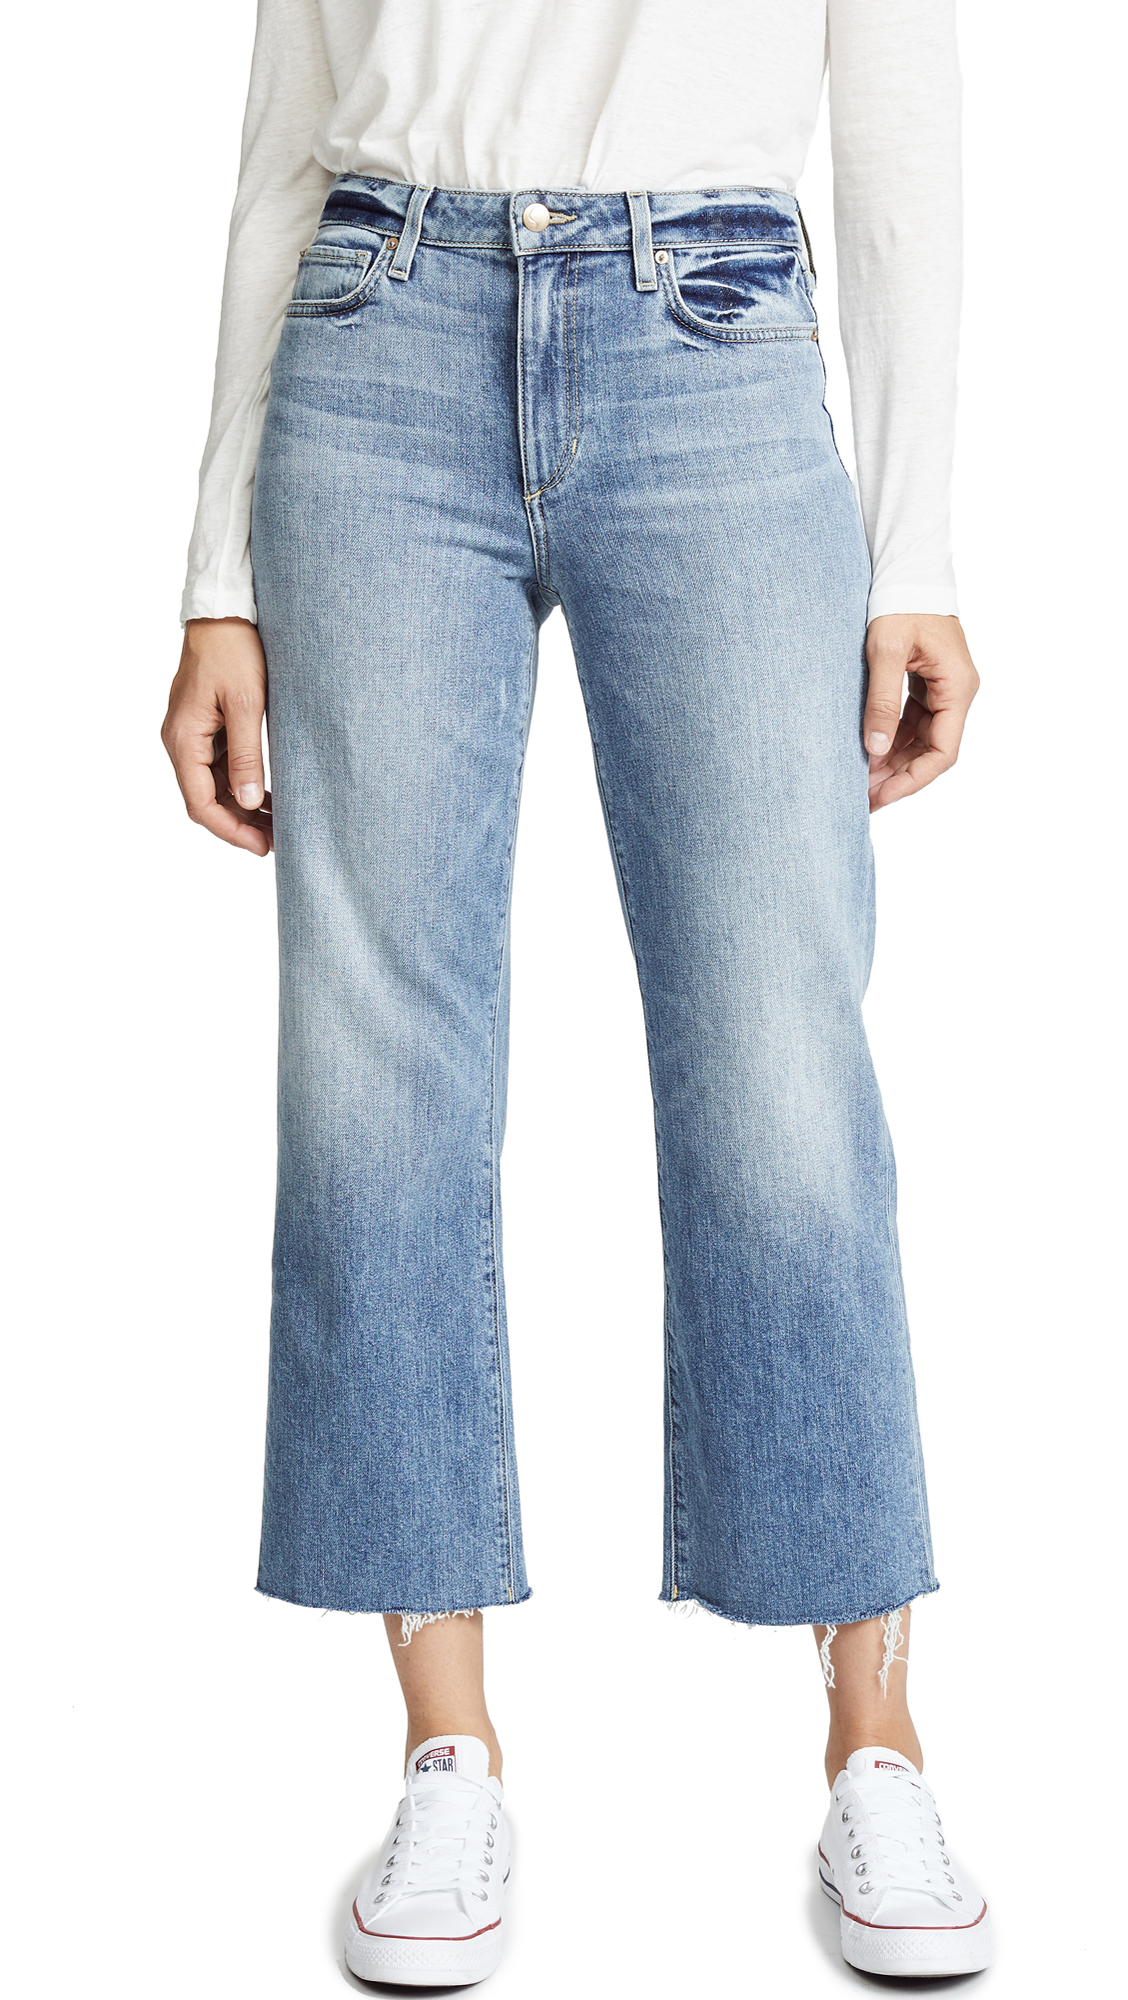 THE WYATT CUT HEM JEANS